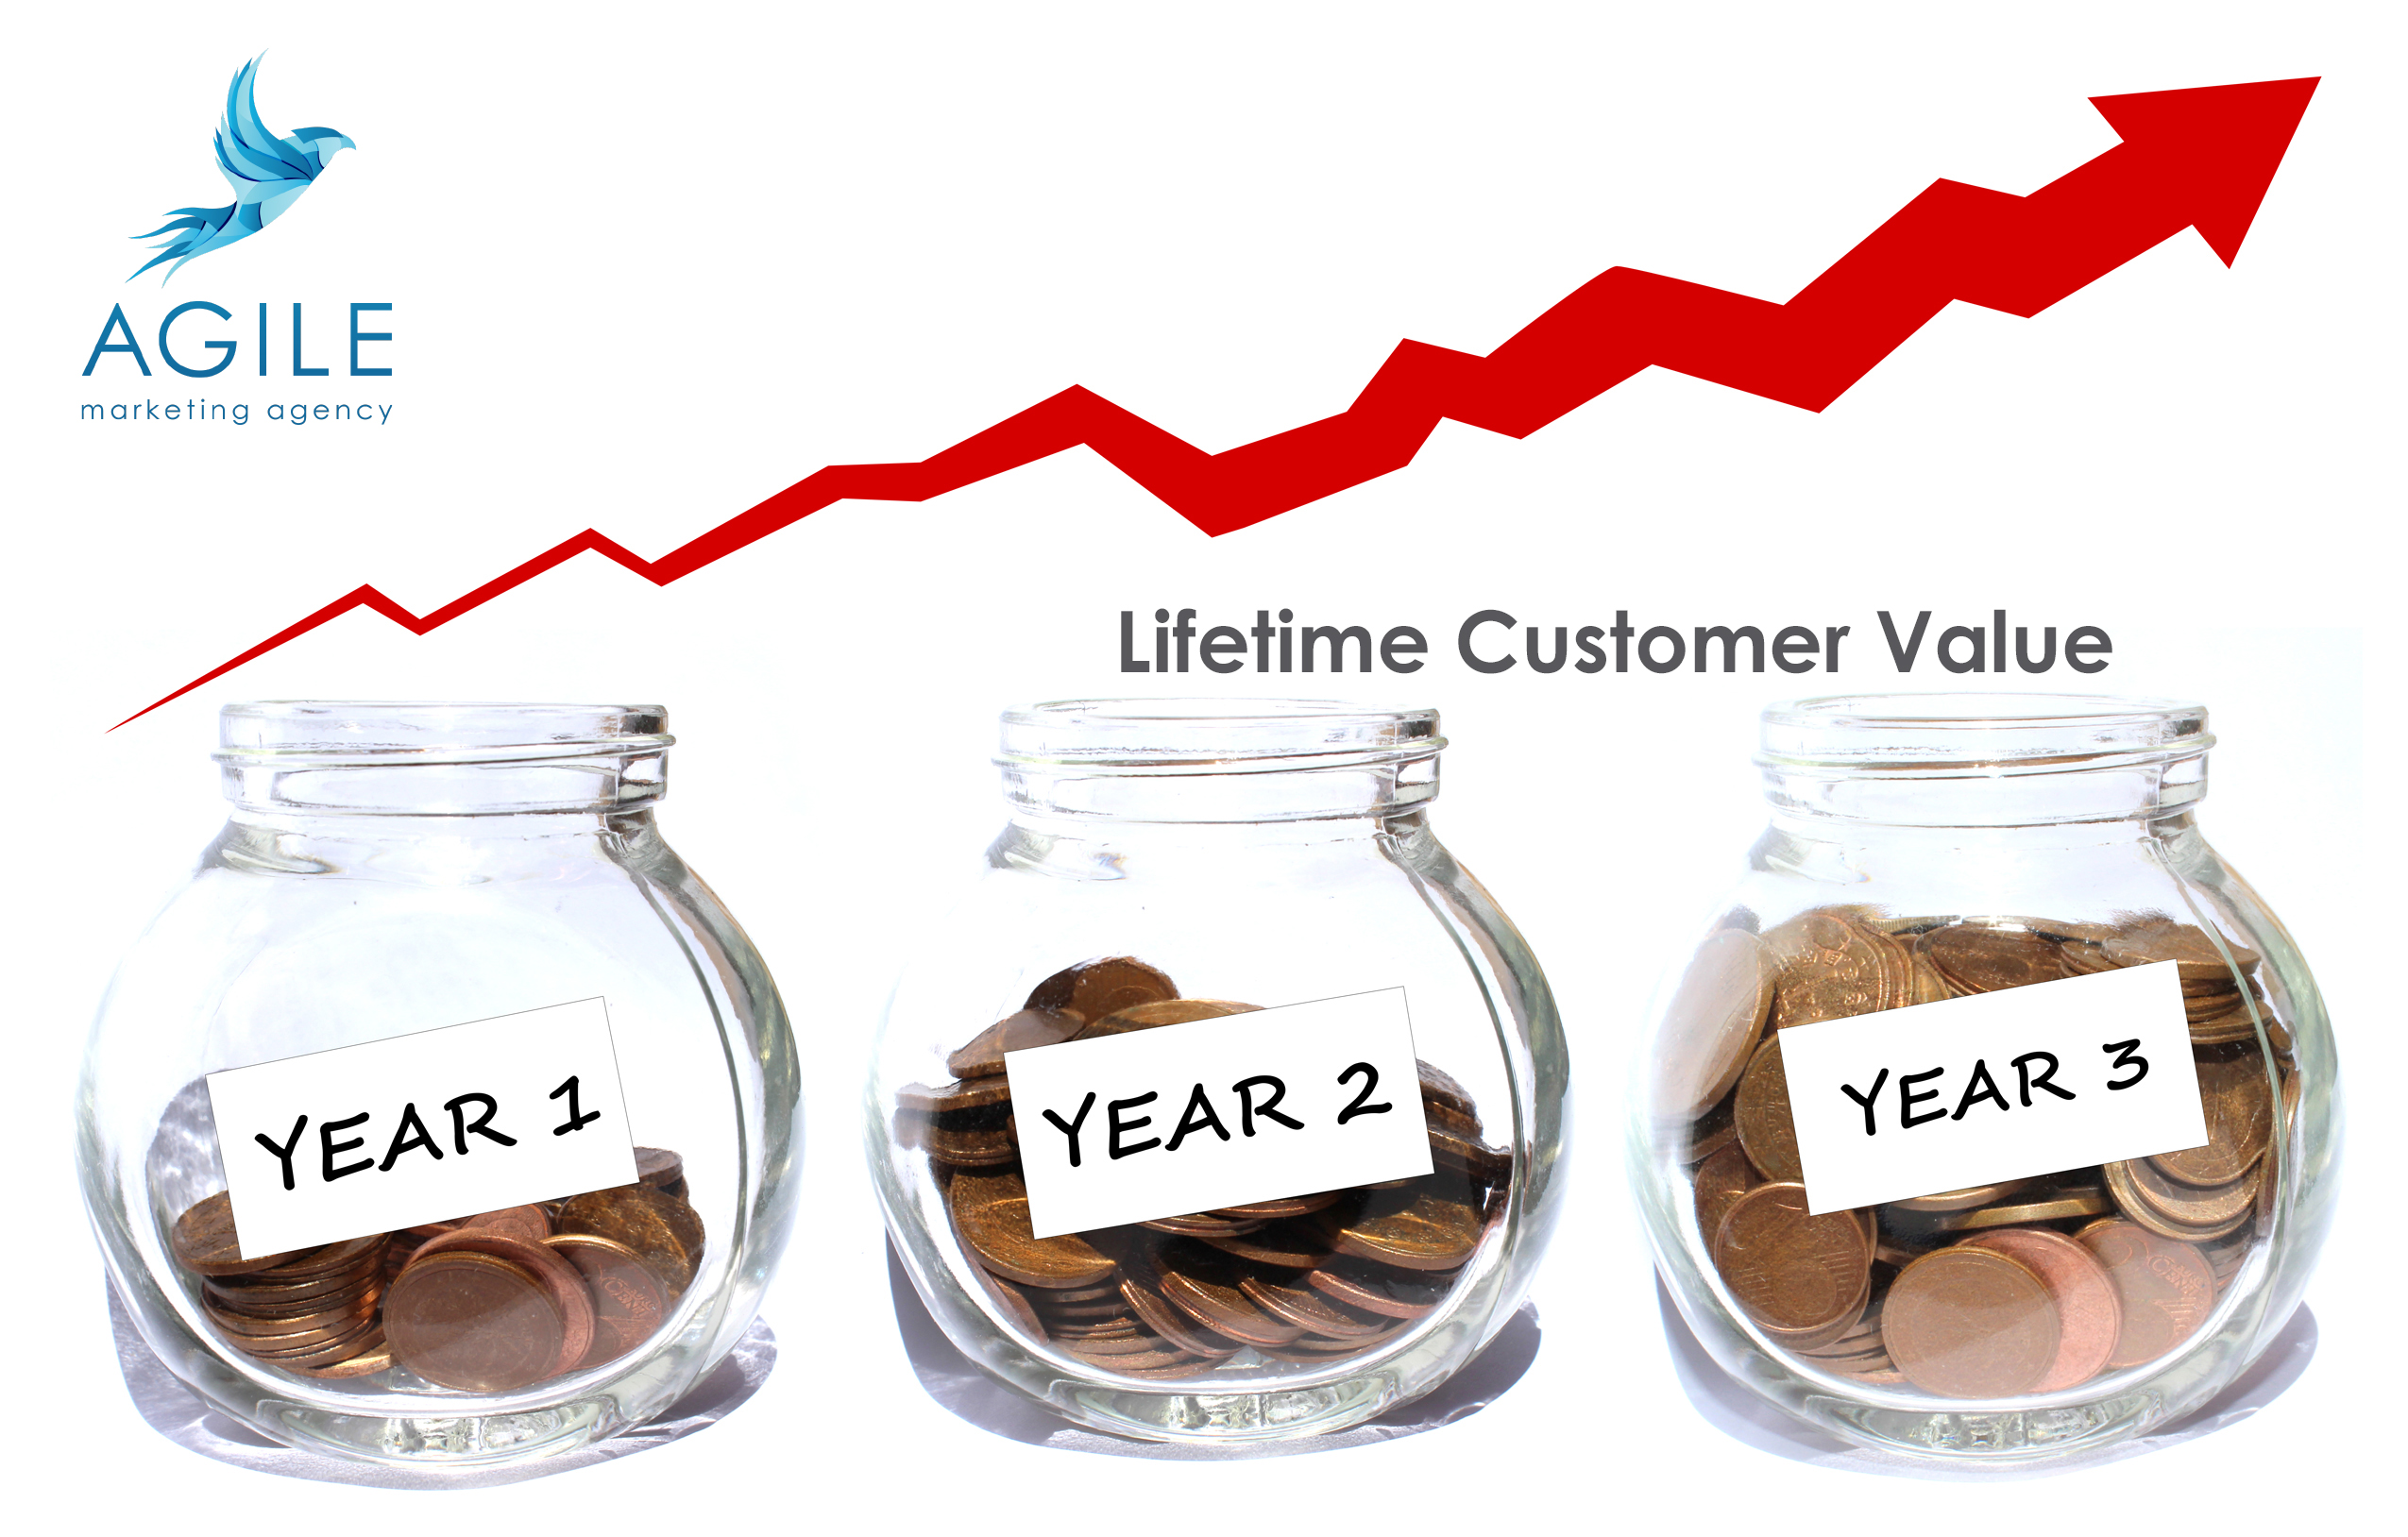 customer lifetime value geld grafiek